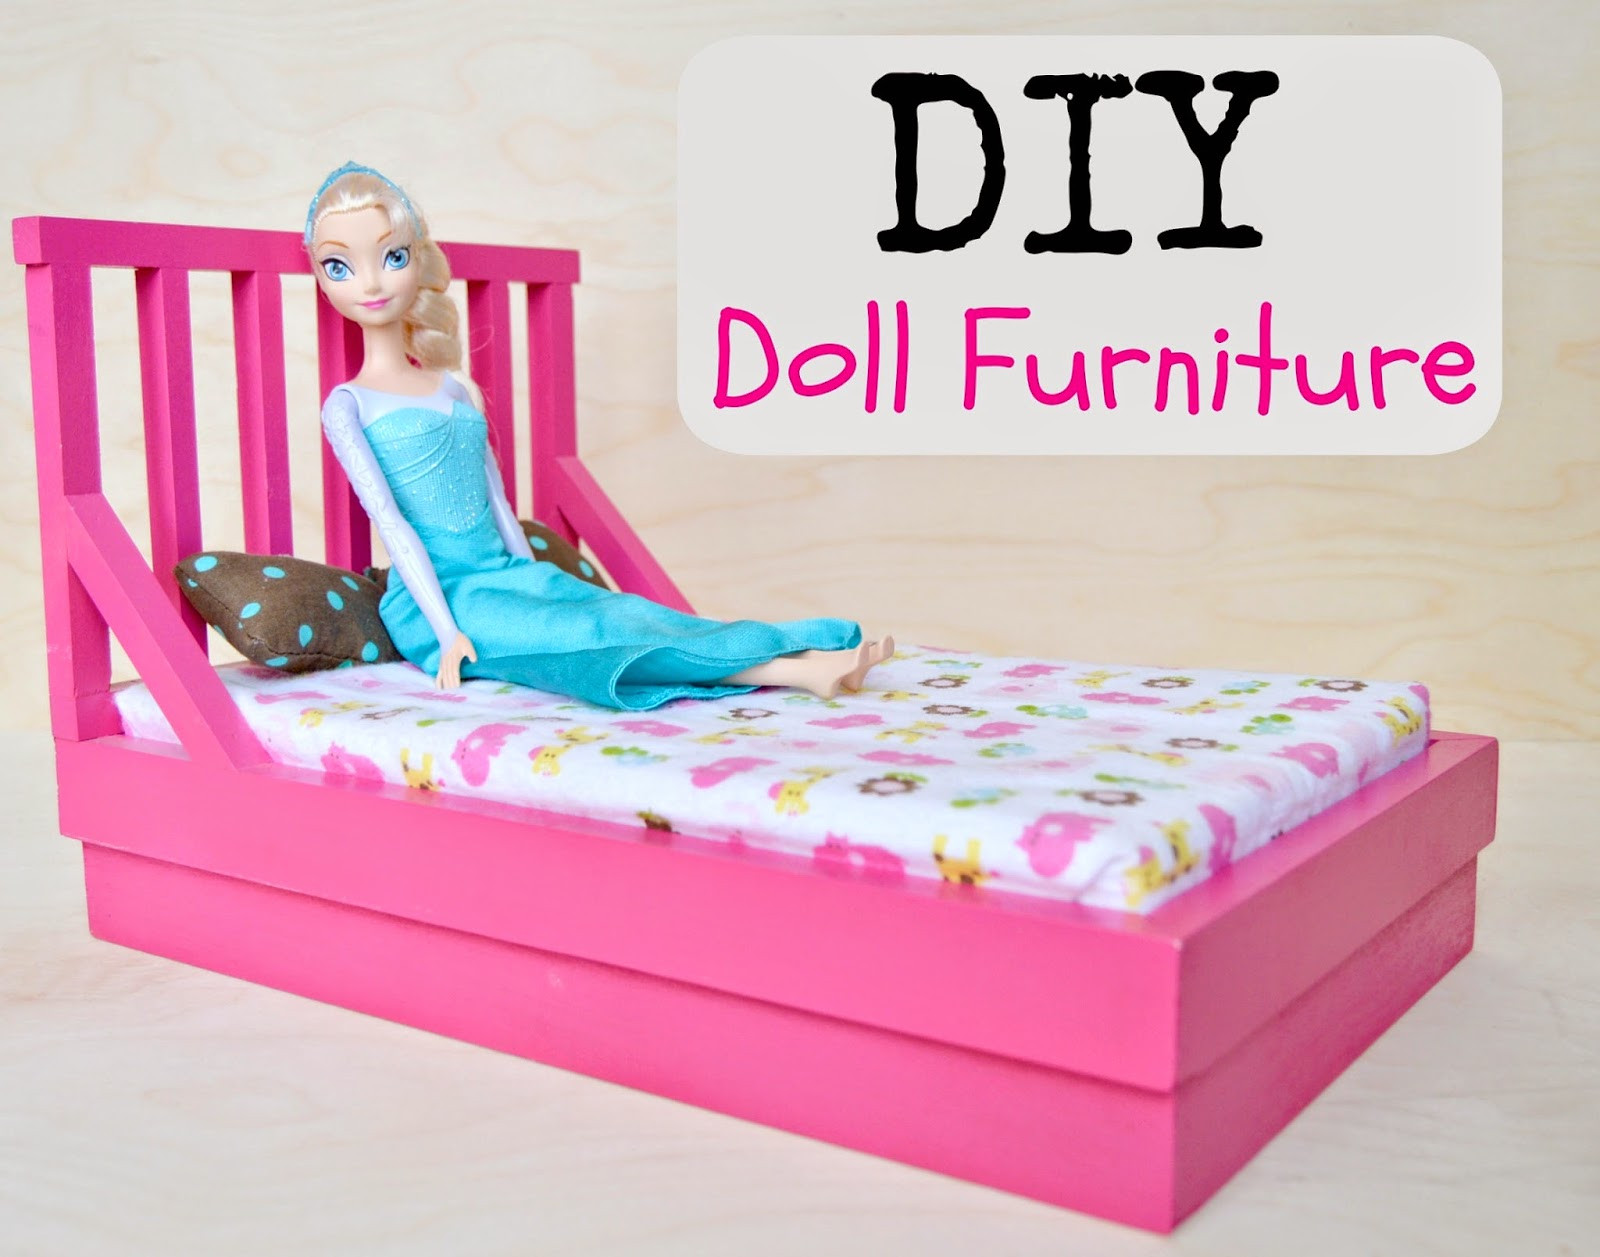 Best ideas about DIY Dolls Furniture . Save or Pin KRUSE S WORKSHOP DIY Dollhouse Furniture Now.